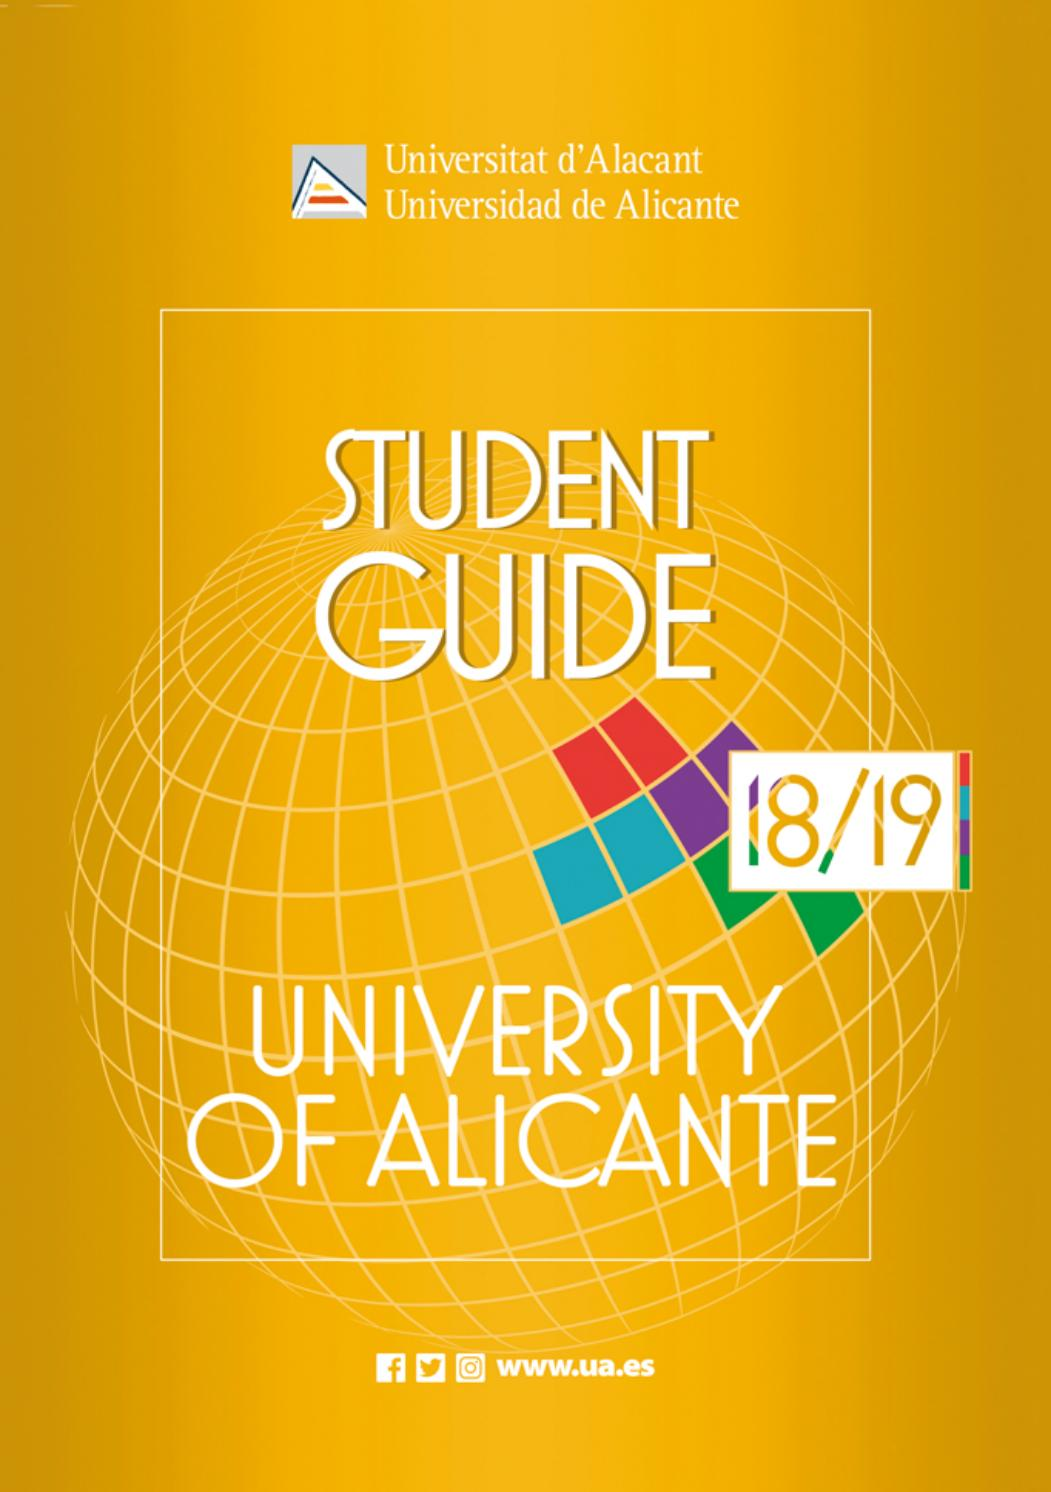 Student Guide University of Alicante 2018-19 by Oficina de